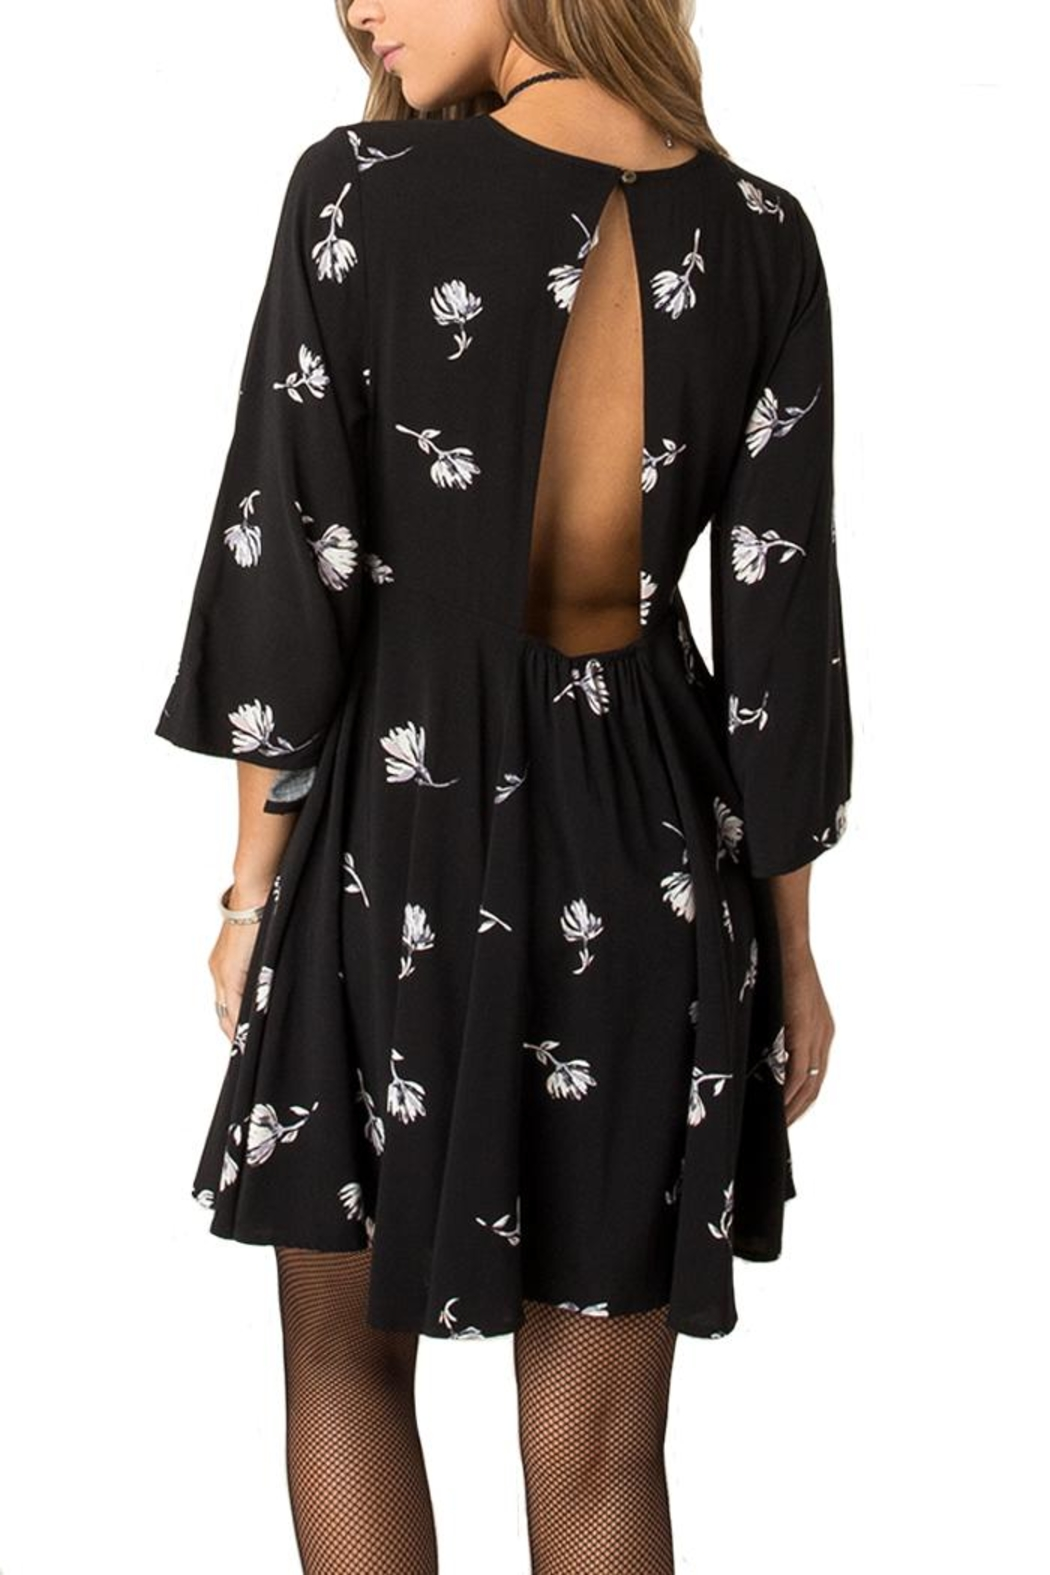 Others Follow  Floral Key Hole Dress - Front Full Image